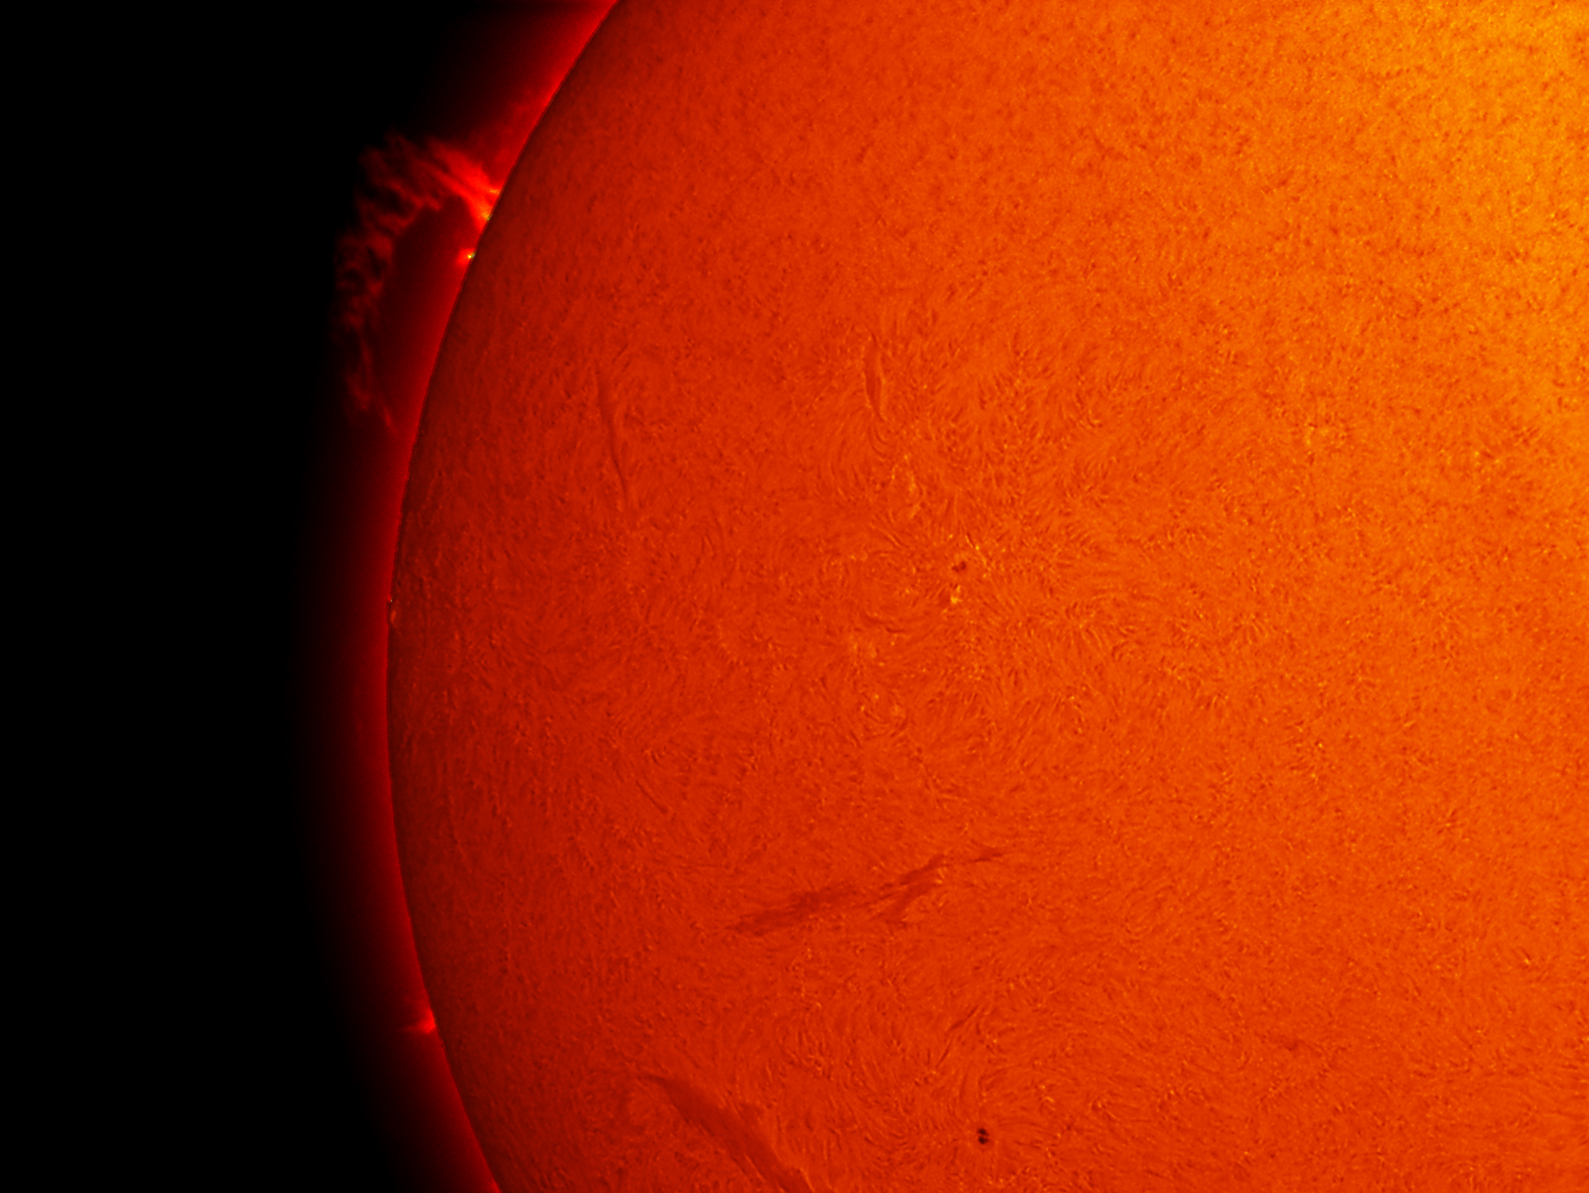 Prominence on the Sun - July 26, 2012